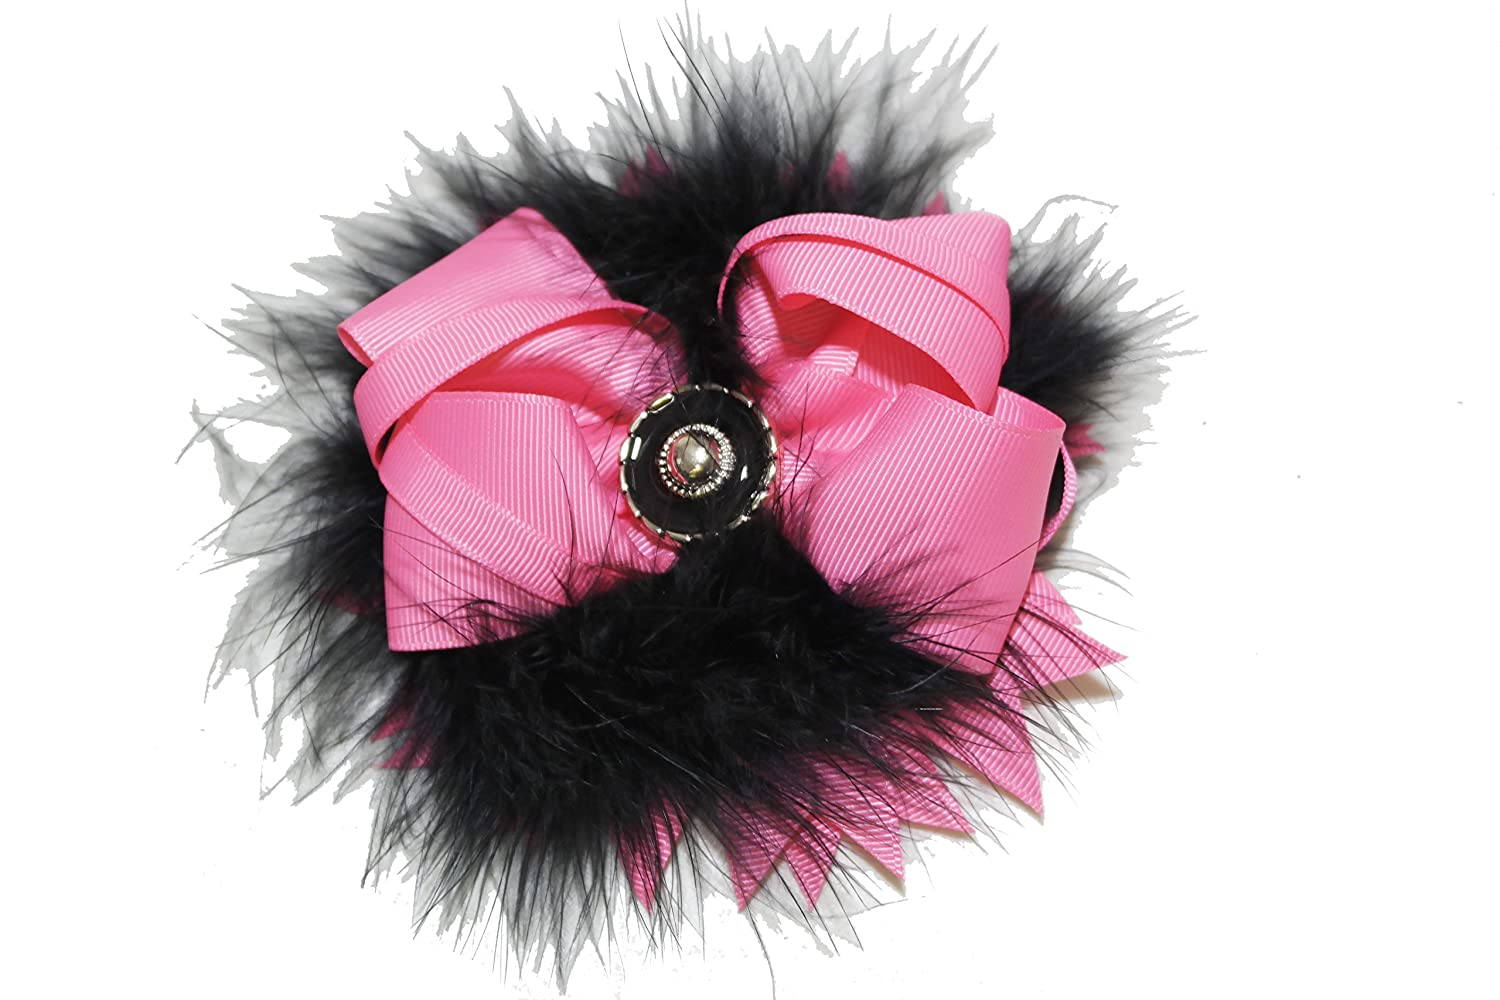 Hot Chicky Chicky Bling Bling Marabou Feather Flower Shaped Hair Bow black and pink for sale